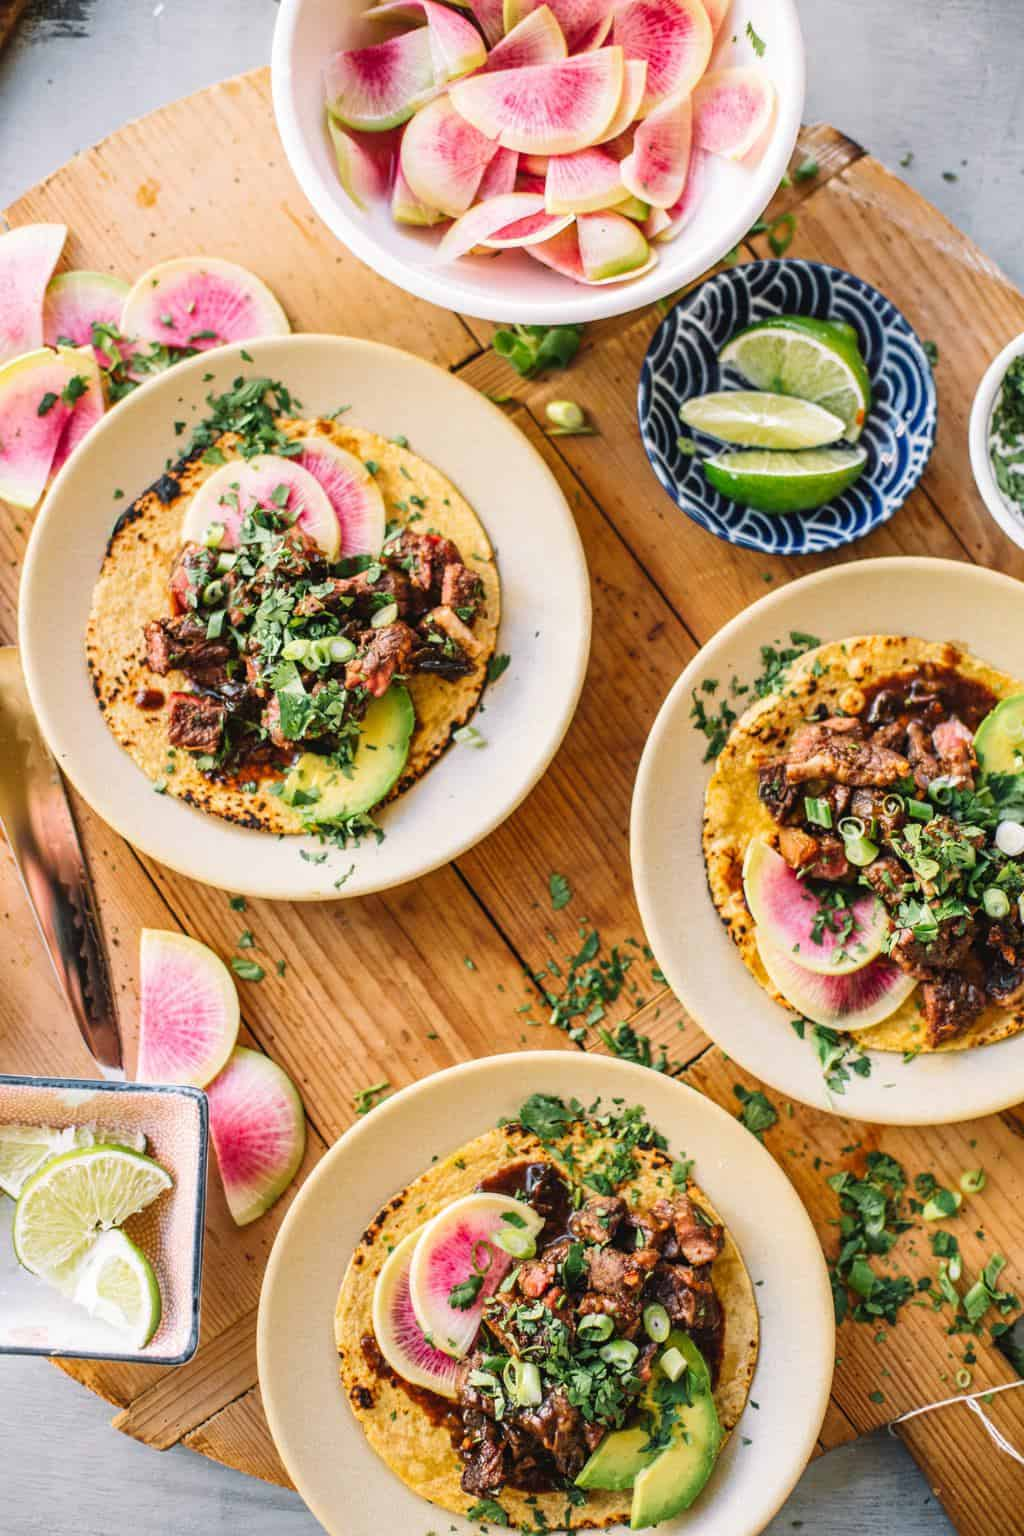 Three sous vide Asian short rib tacos on white plates with watermelon radishes and lime wedges in bowls